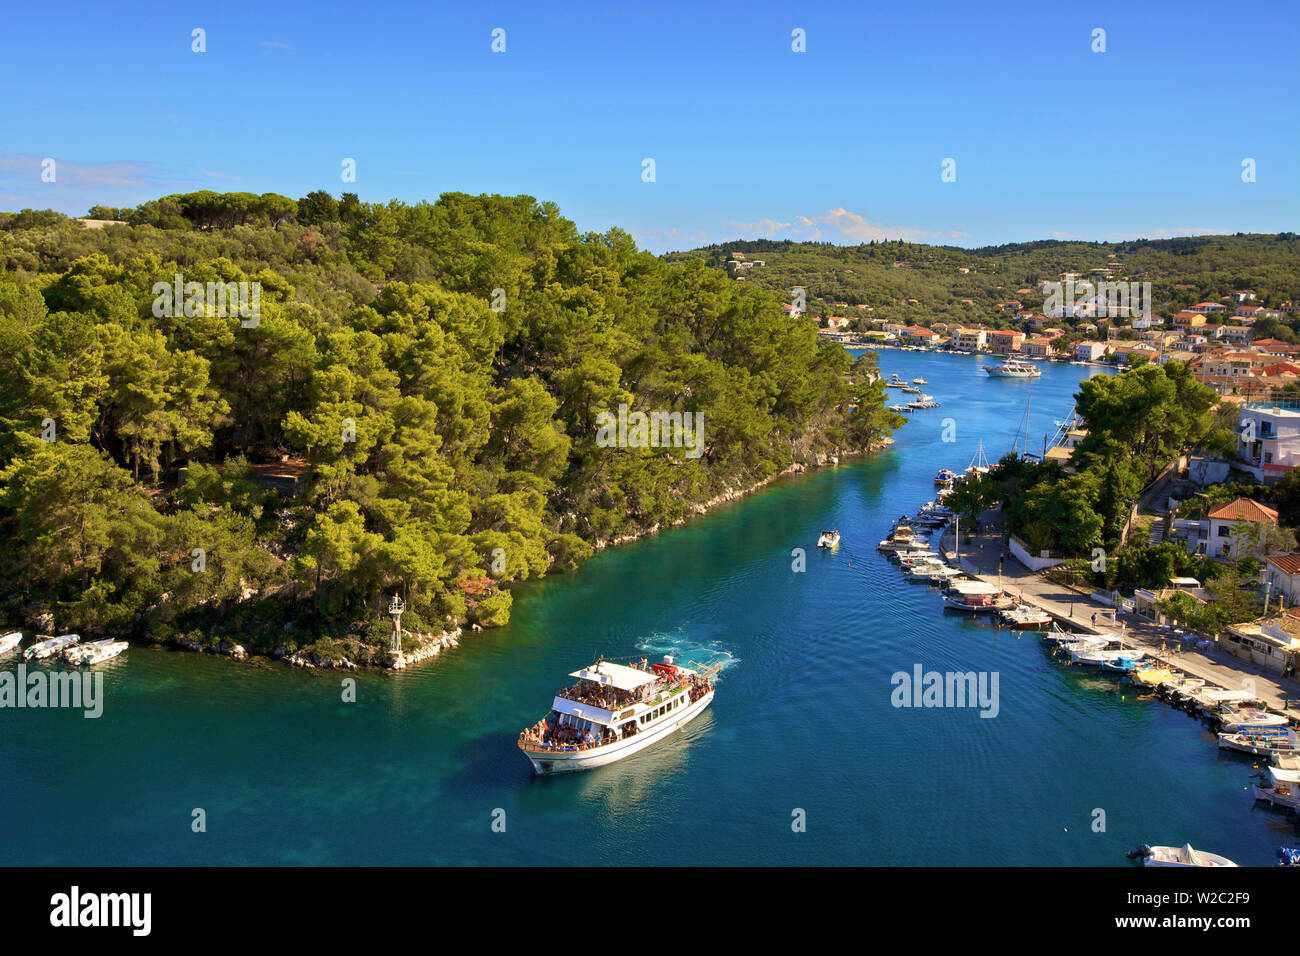 View Over Gaios Harbour, Paxos, The Ionian Islands, Greek Islands, Greece, Europe - Stock Image